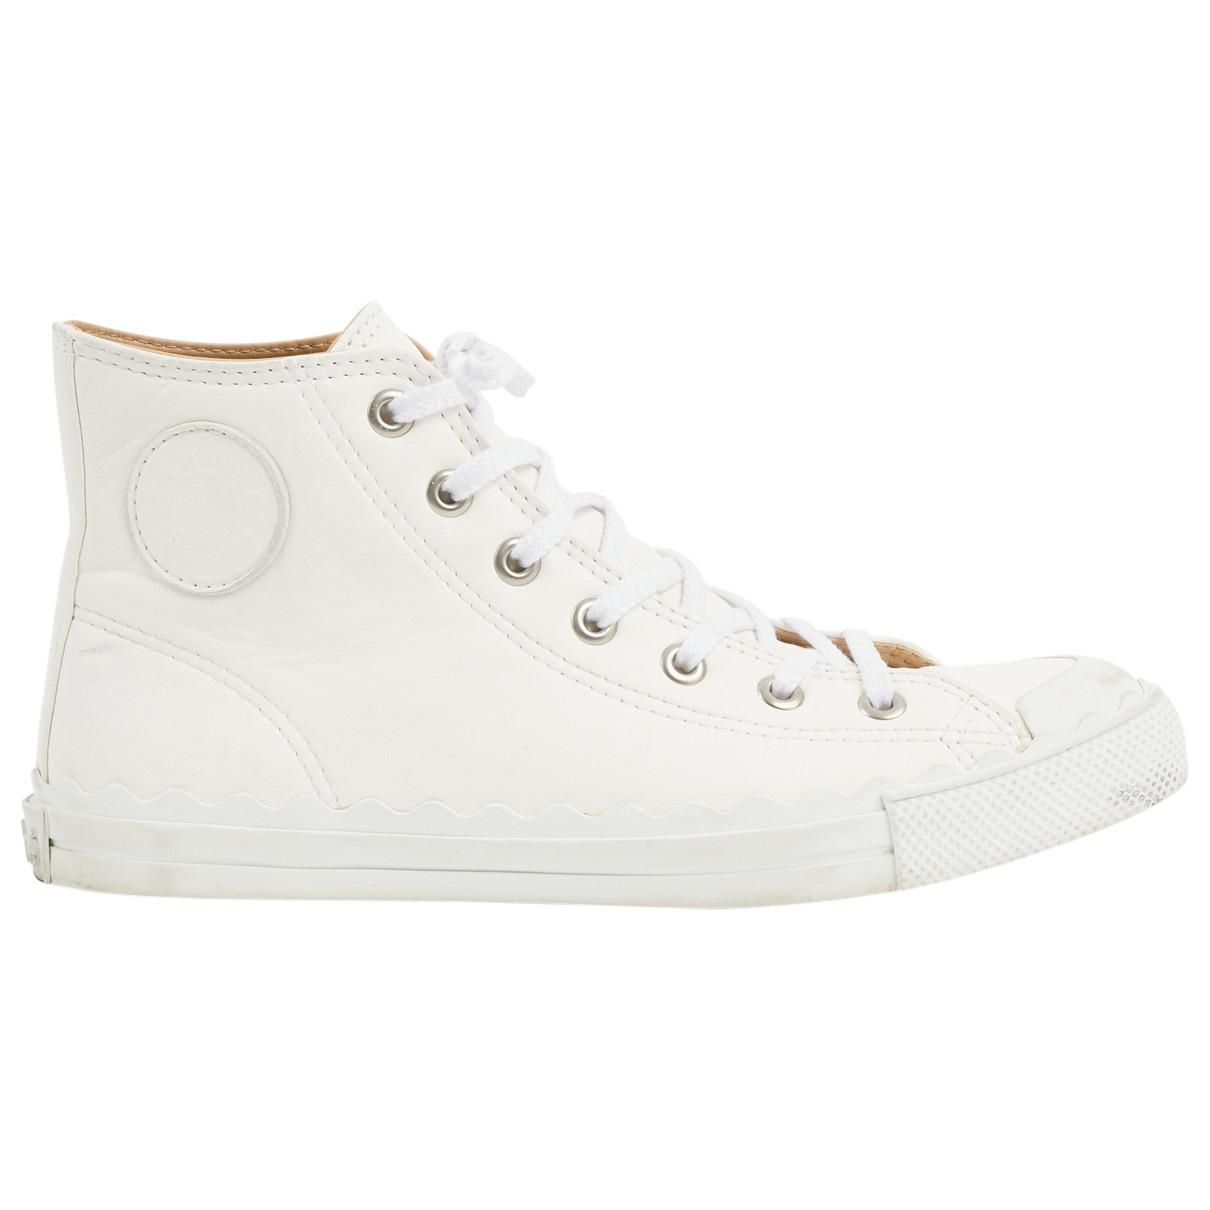 Pre-owned - Leather trainers Chloé nXDnz3